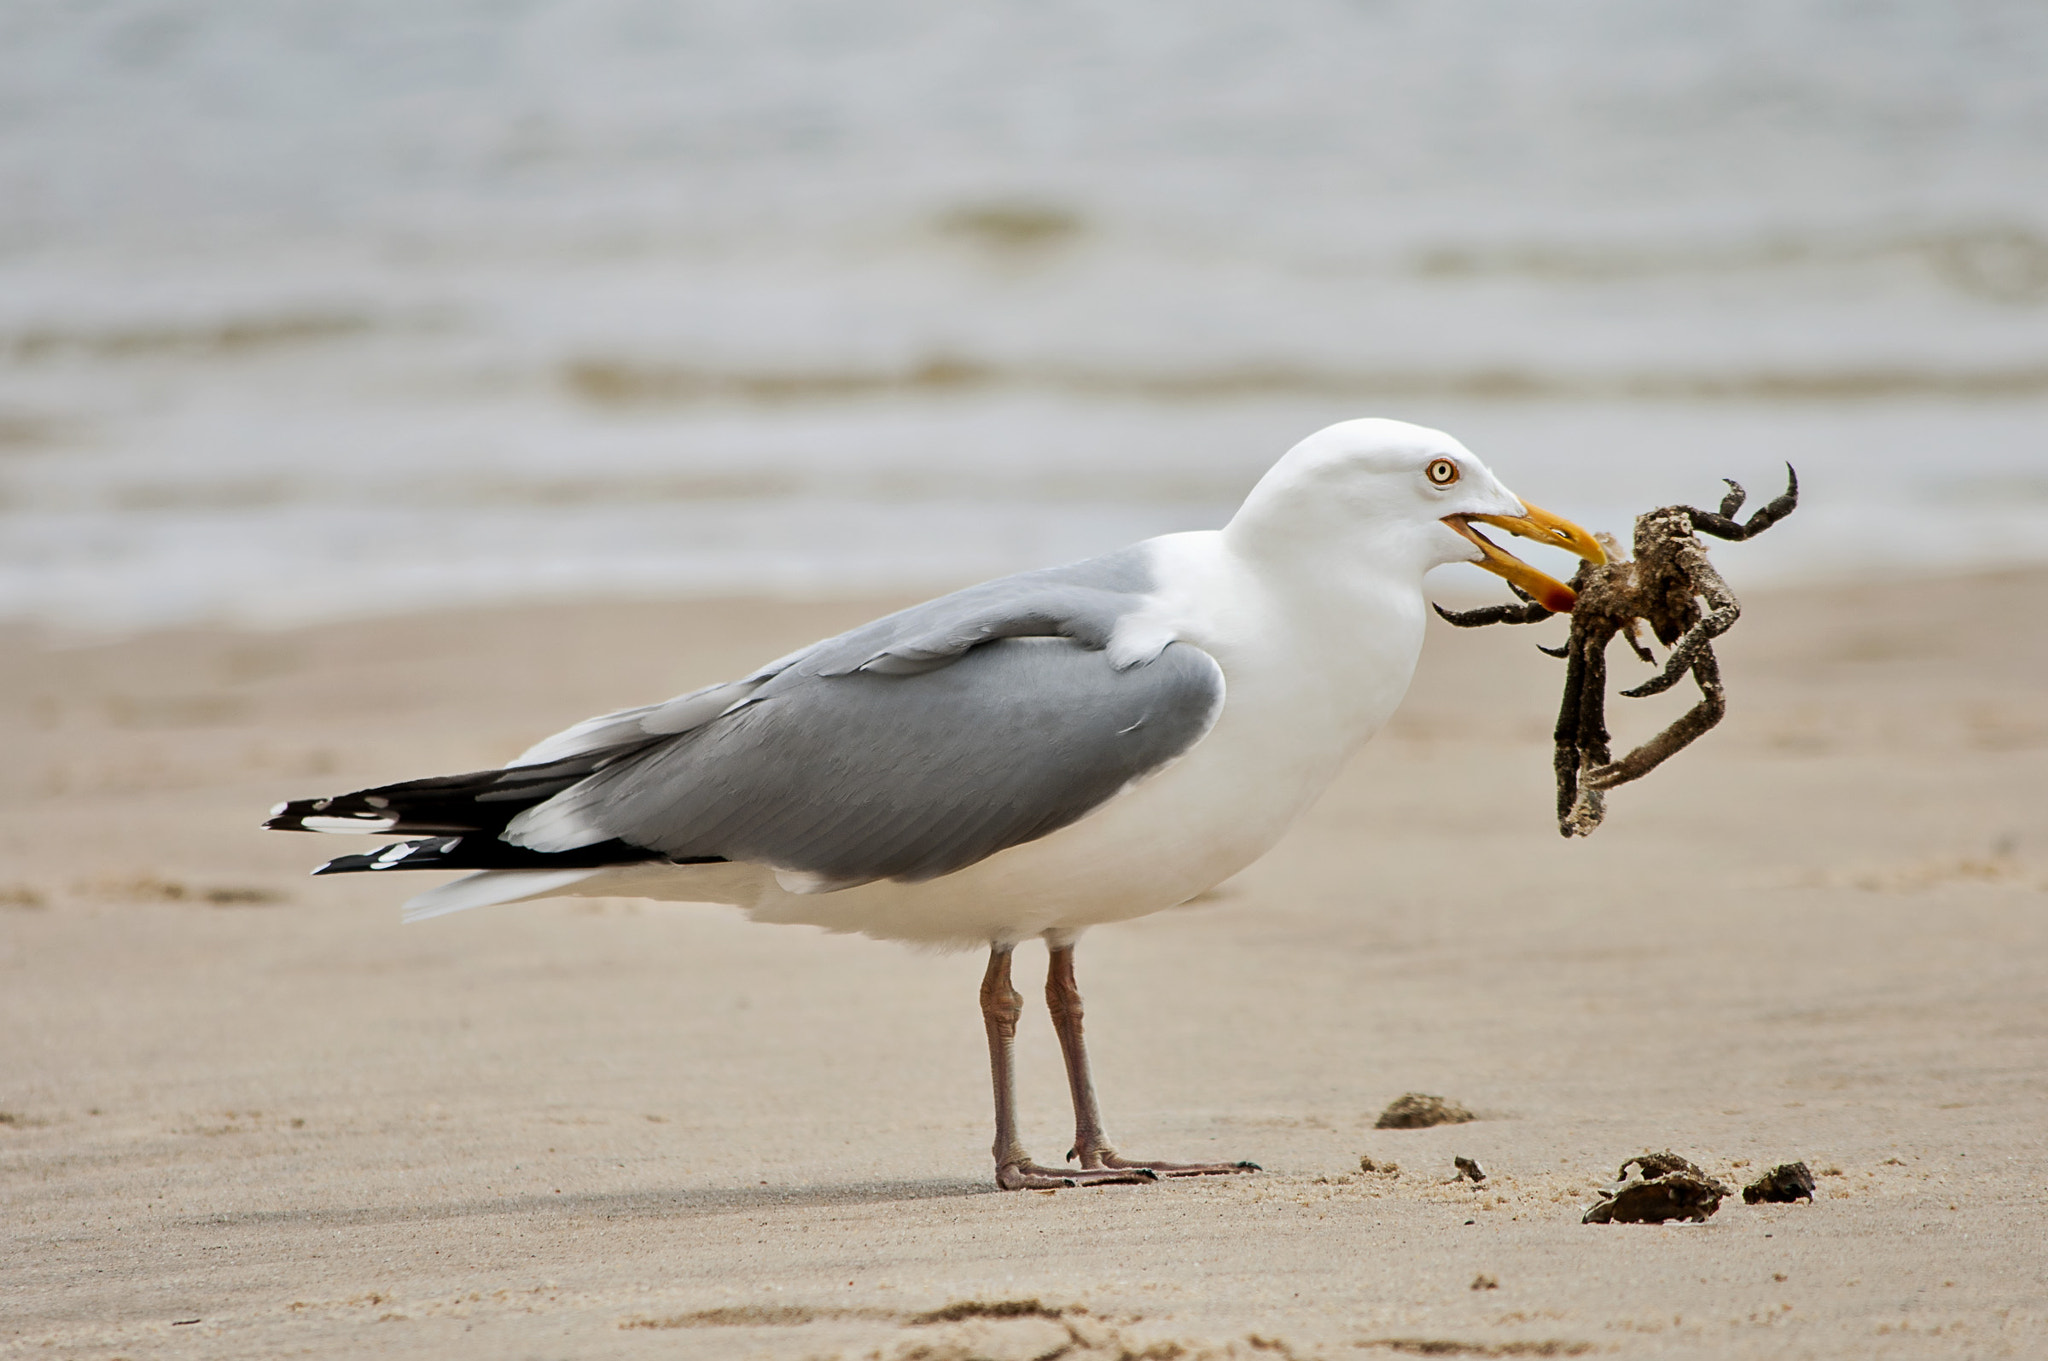 Photograph Seagull Lunching by Heather Conley on 500px